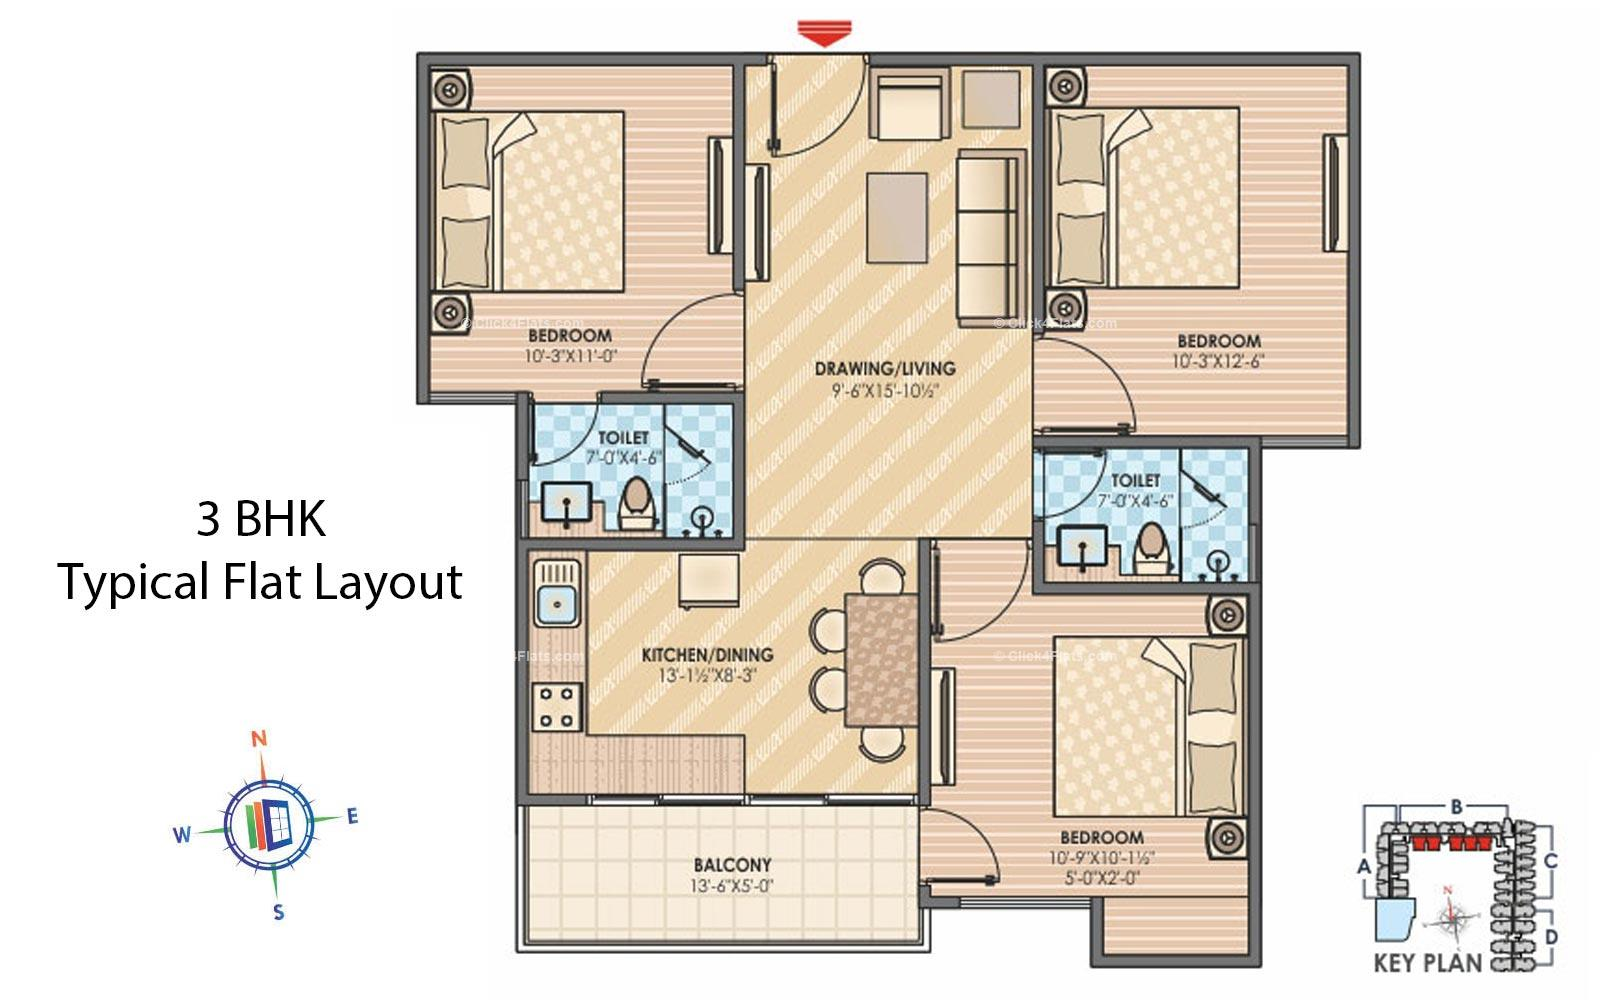 Sky Lounges 3 BHK